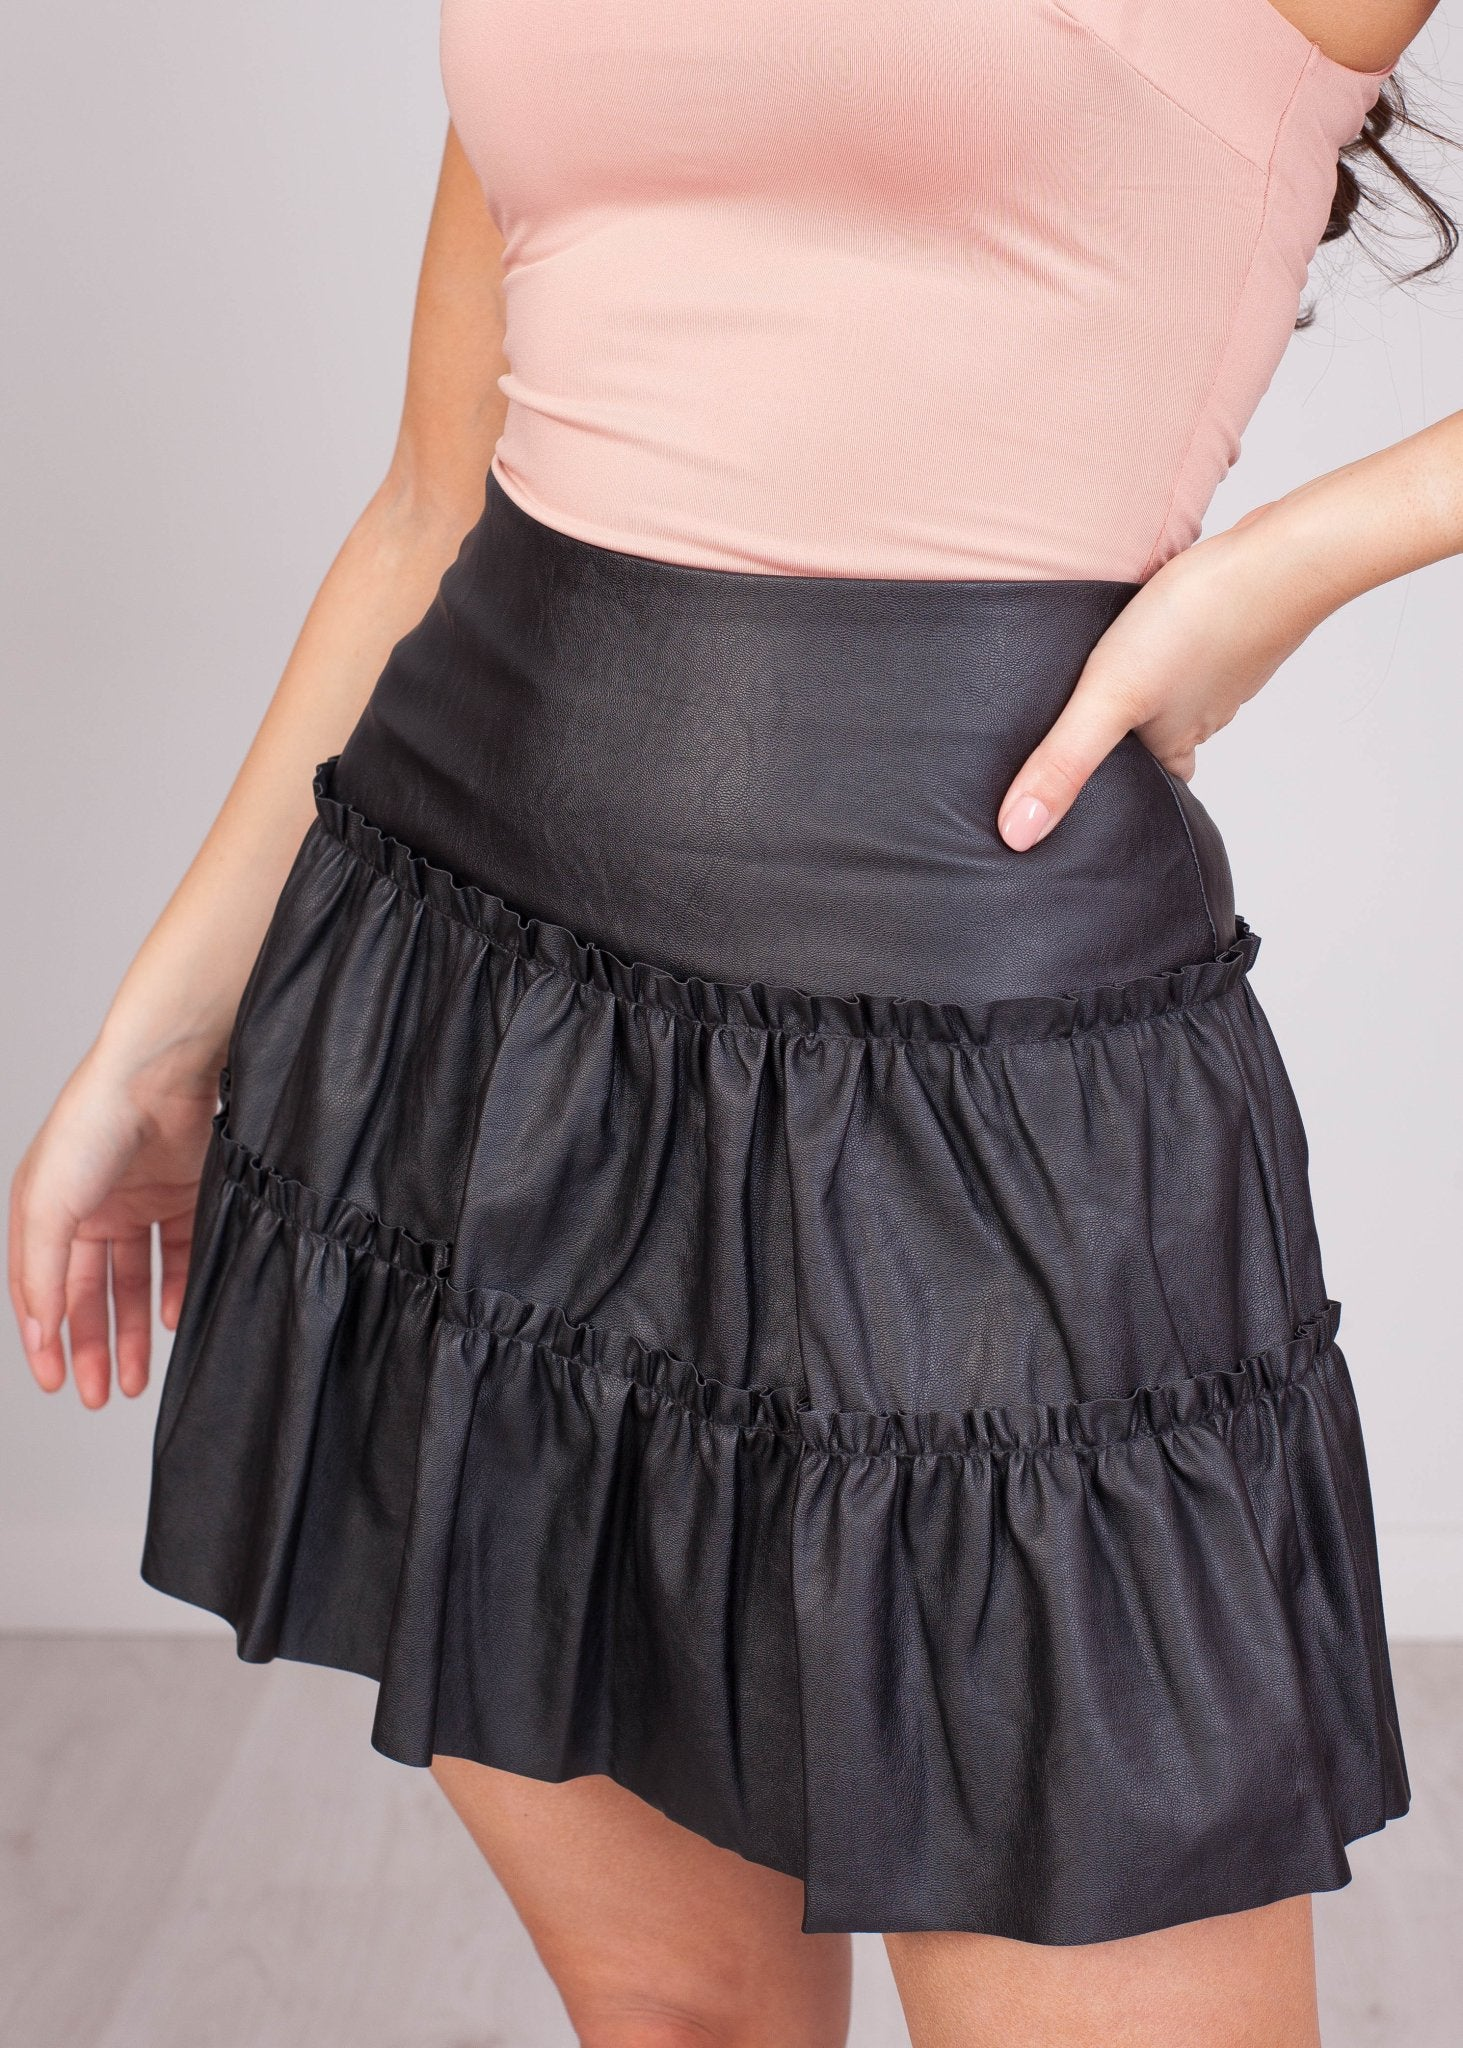 Elsa Leather Frill Mini Skirt - The Walk in Wardrobe